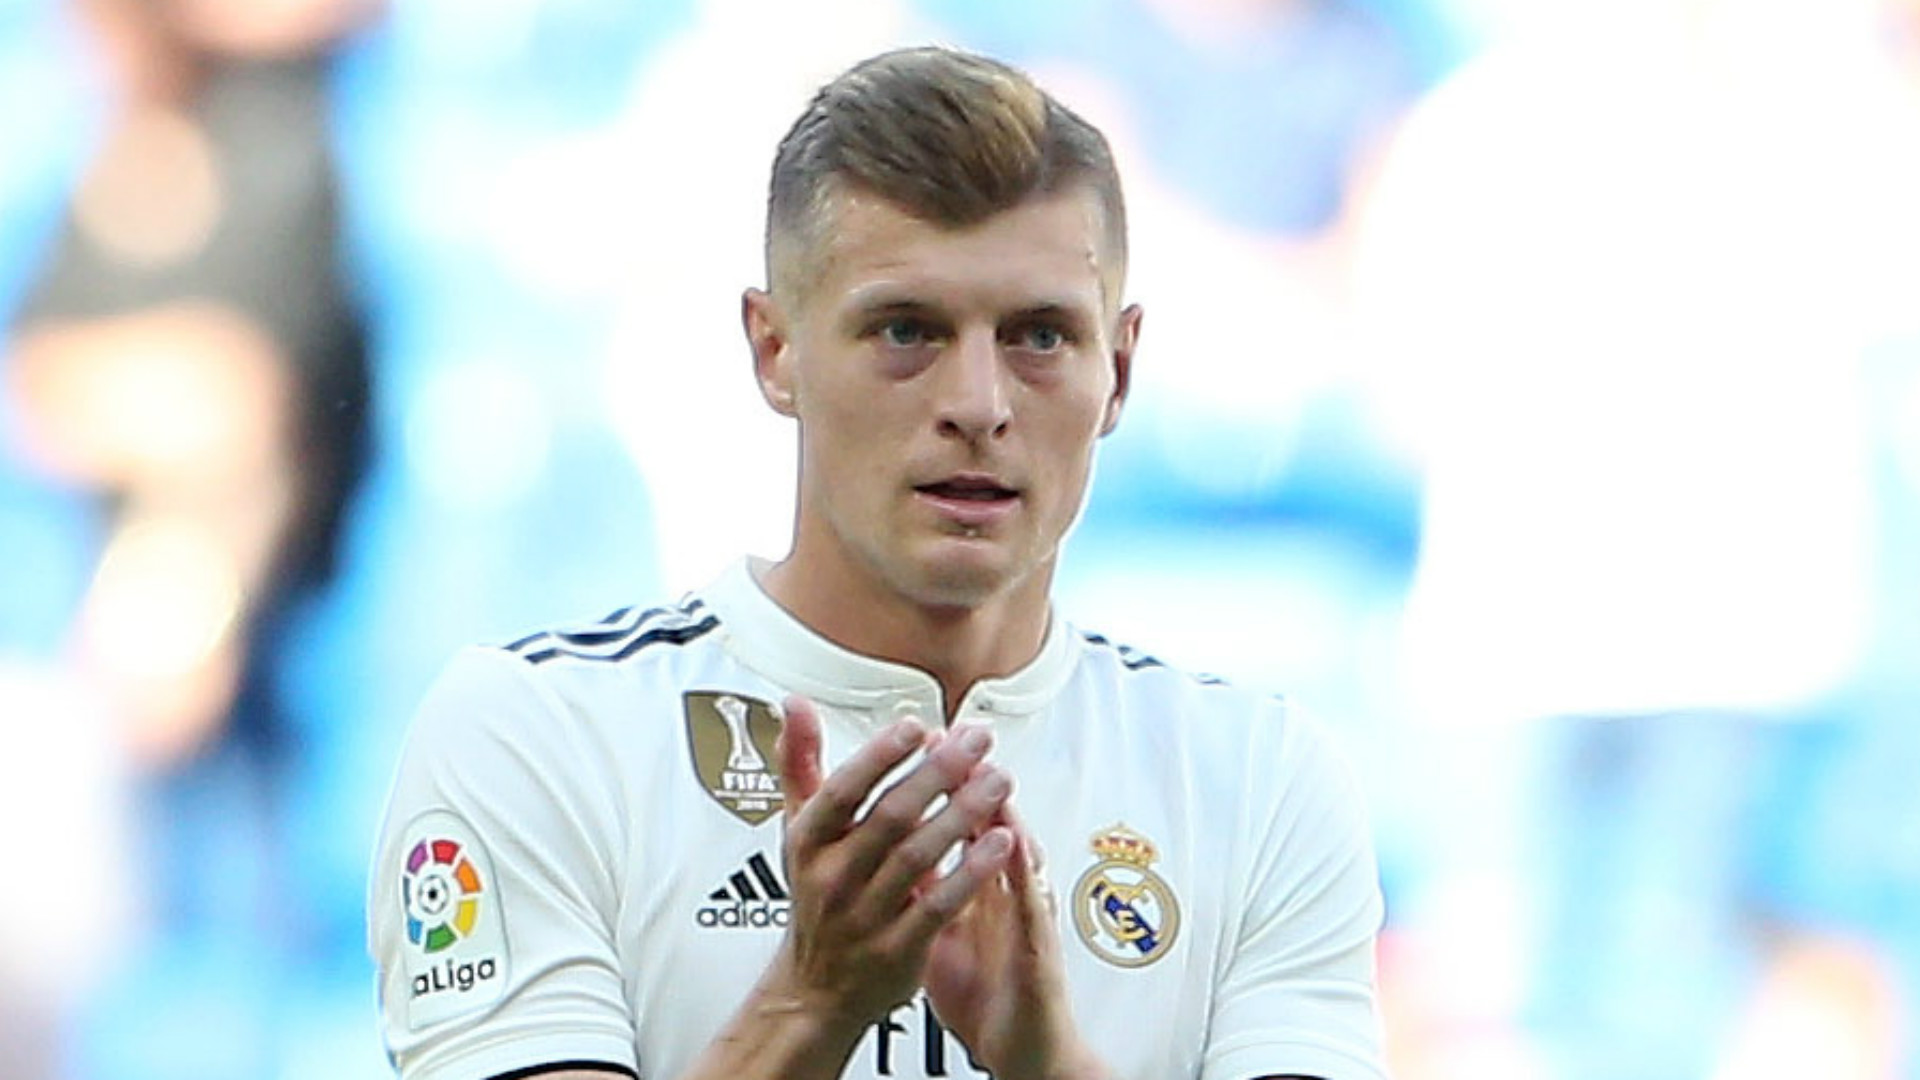 I'll keep my place if Pogba arrives at Madrid - Kroos